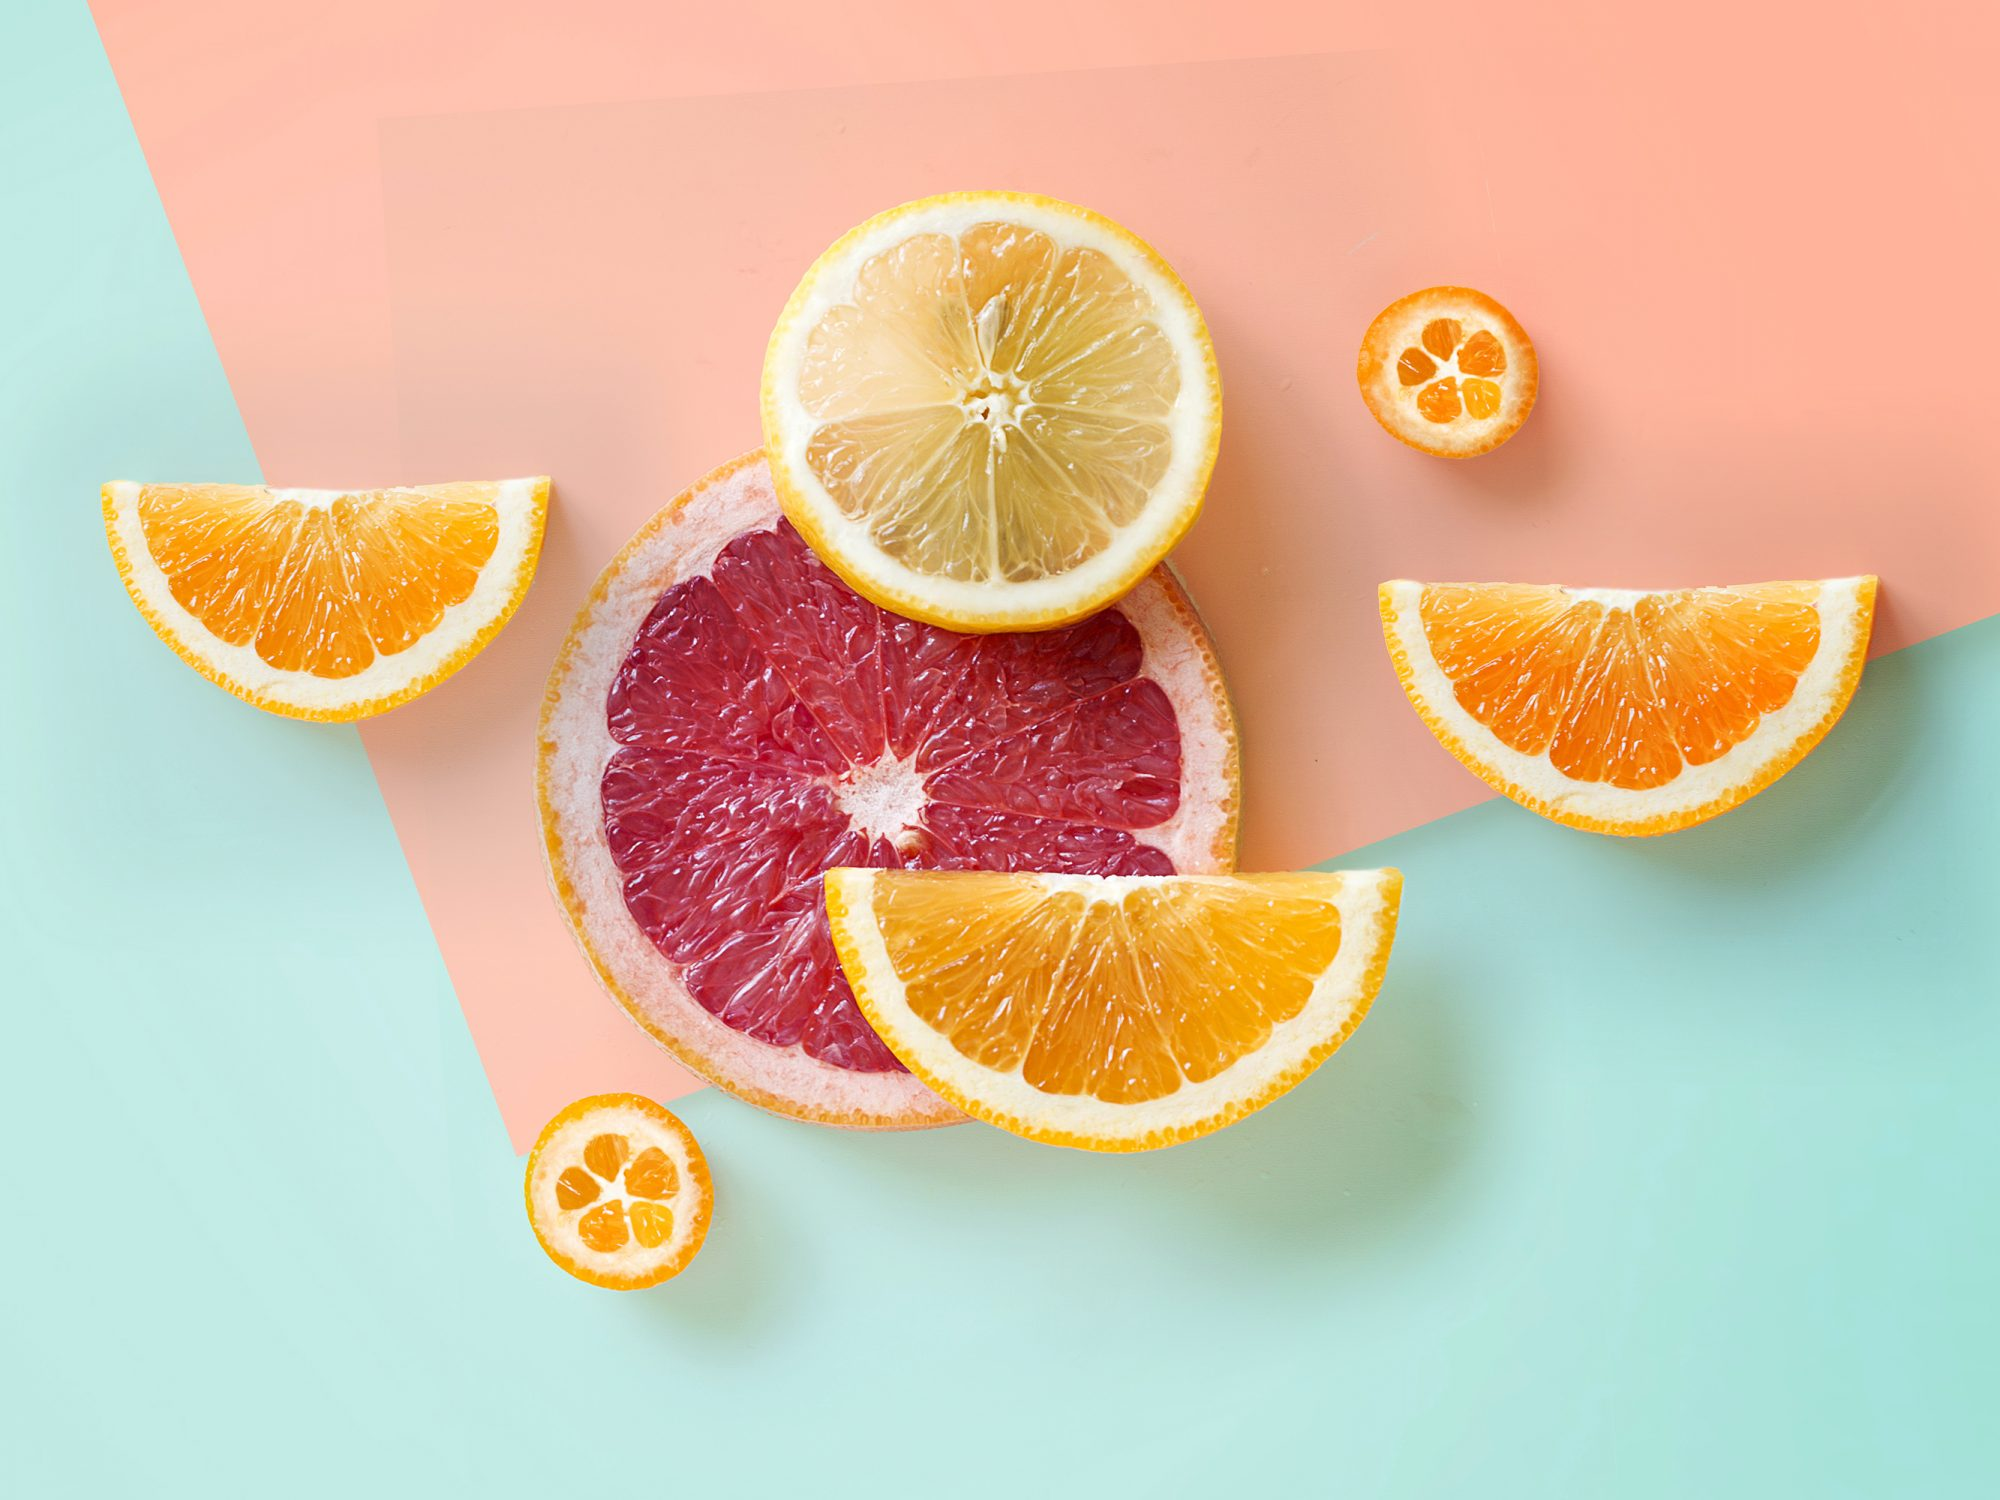 slices of oranges and grapefruit on a colorful background